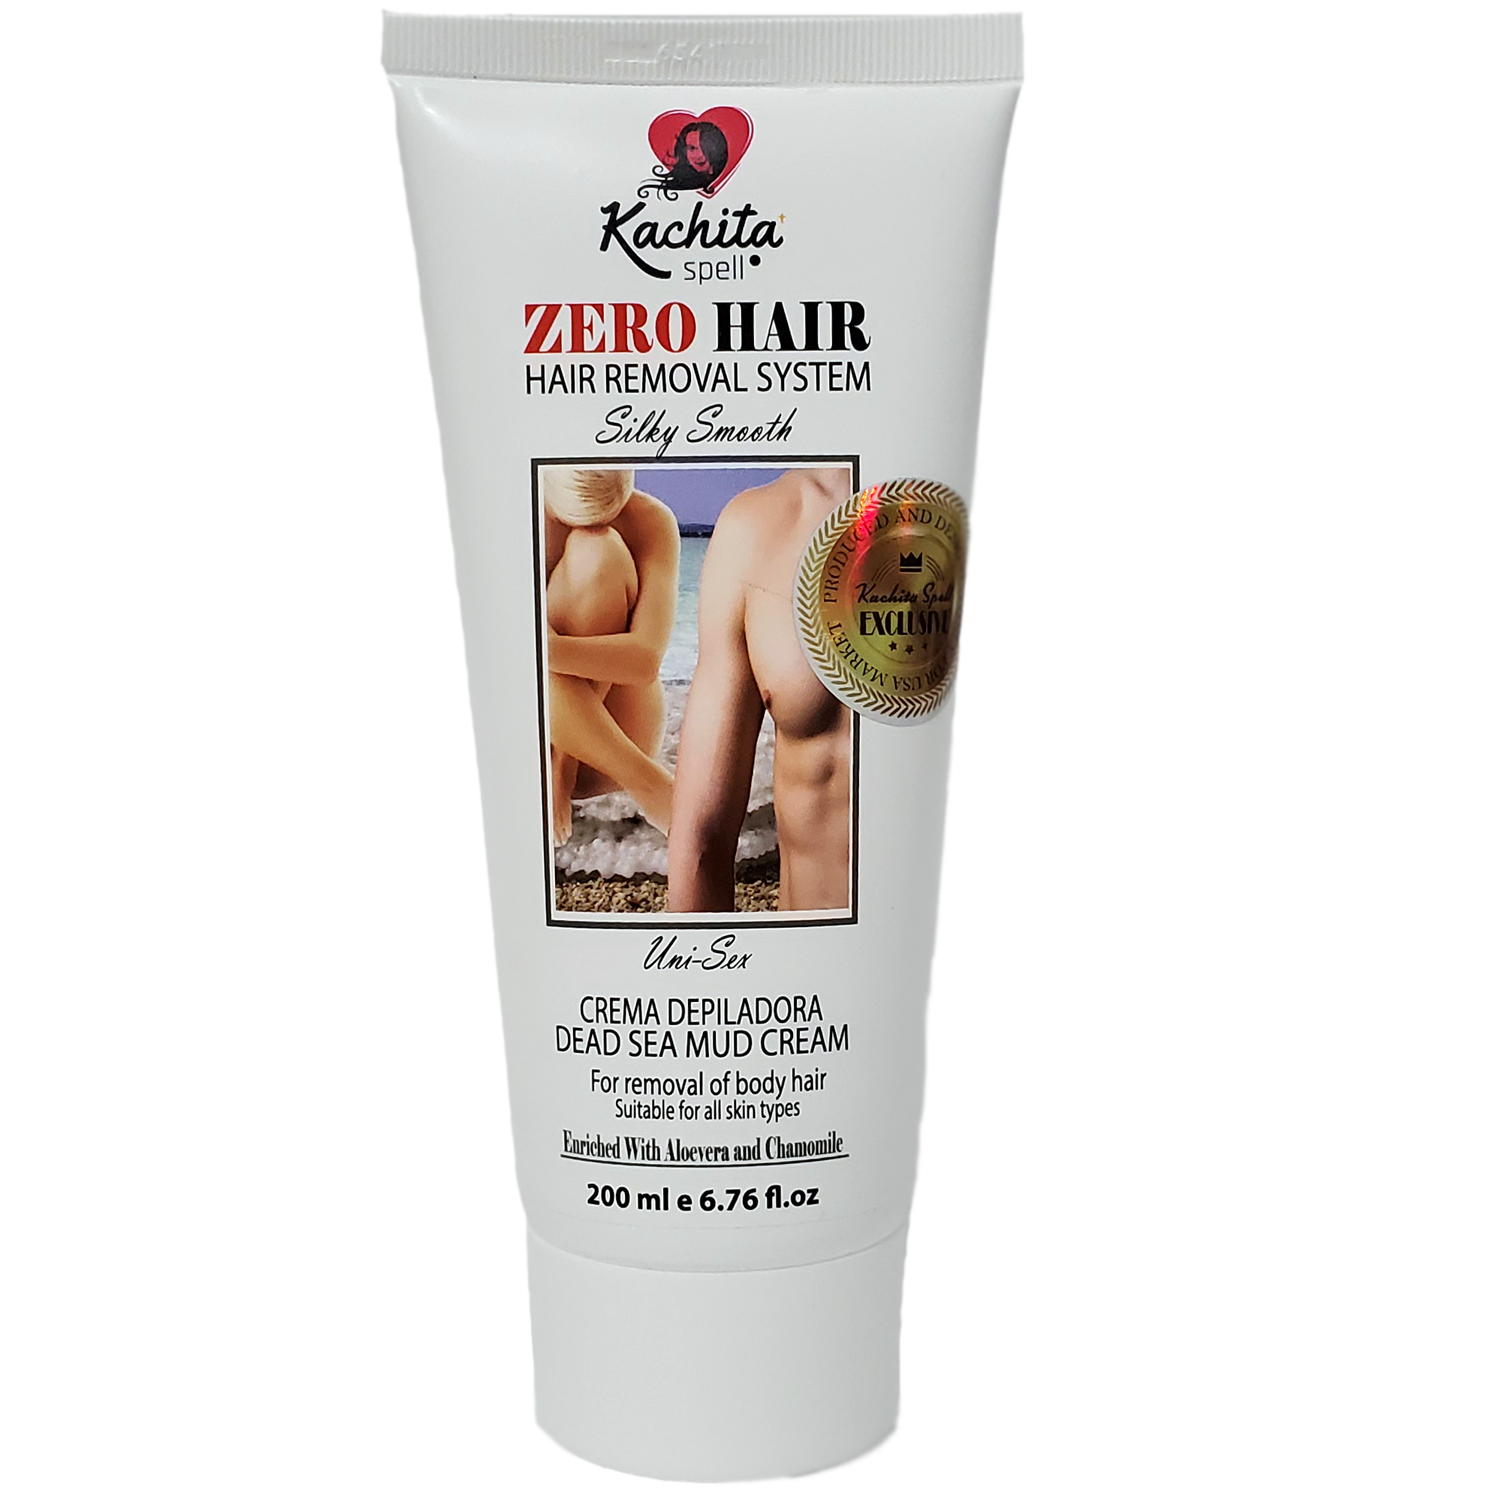 Zerohair Hair Removal System Depilatory Cream 6 76 Oz Kachita Spell